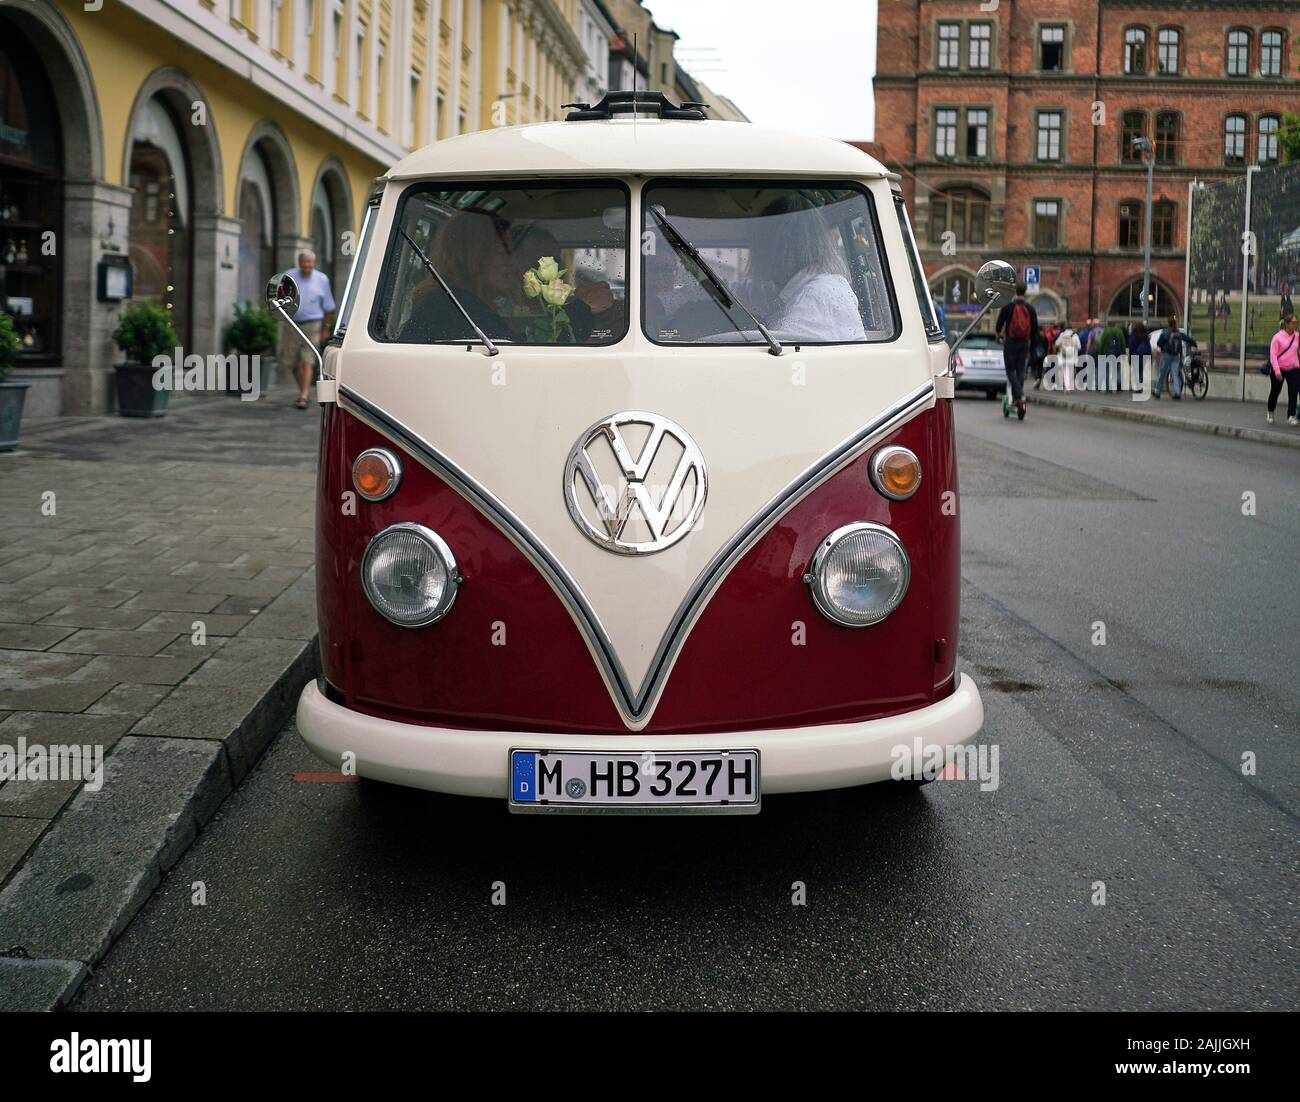 Front View Of An Old Vintage Volkswagen Camper Van Parked In The Streets Of Old Town Munich Germany Stock Photo Alamy